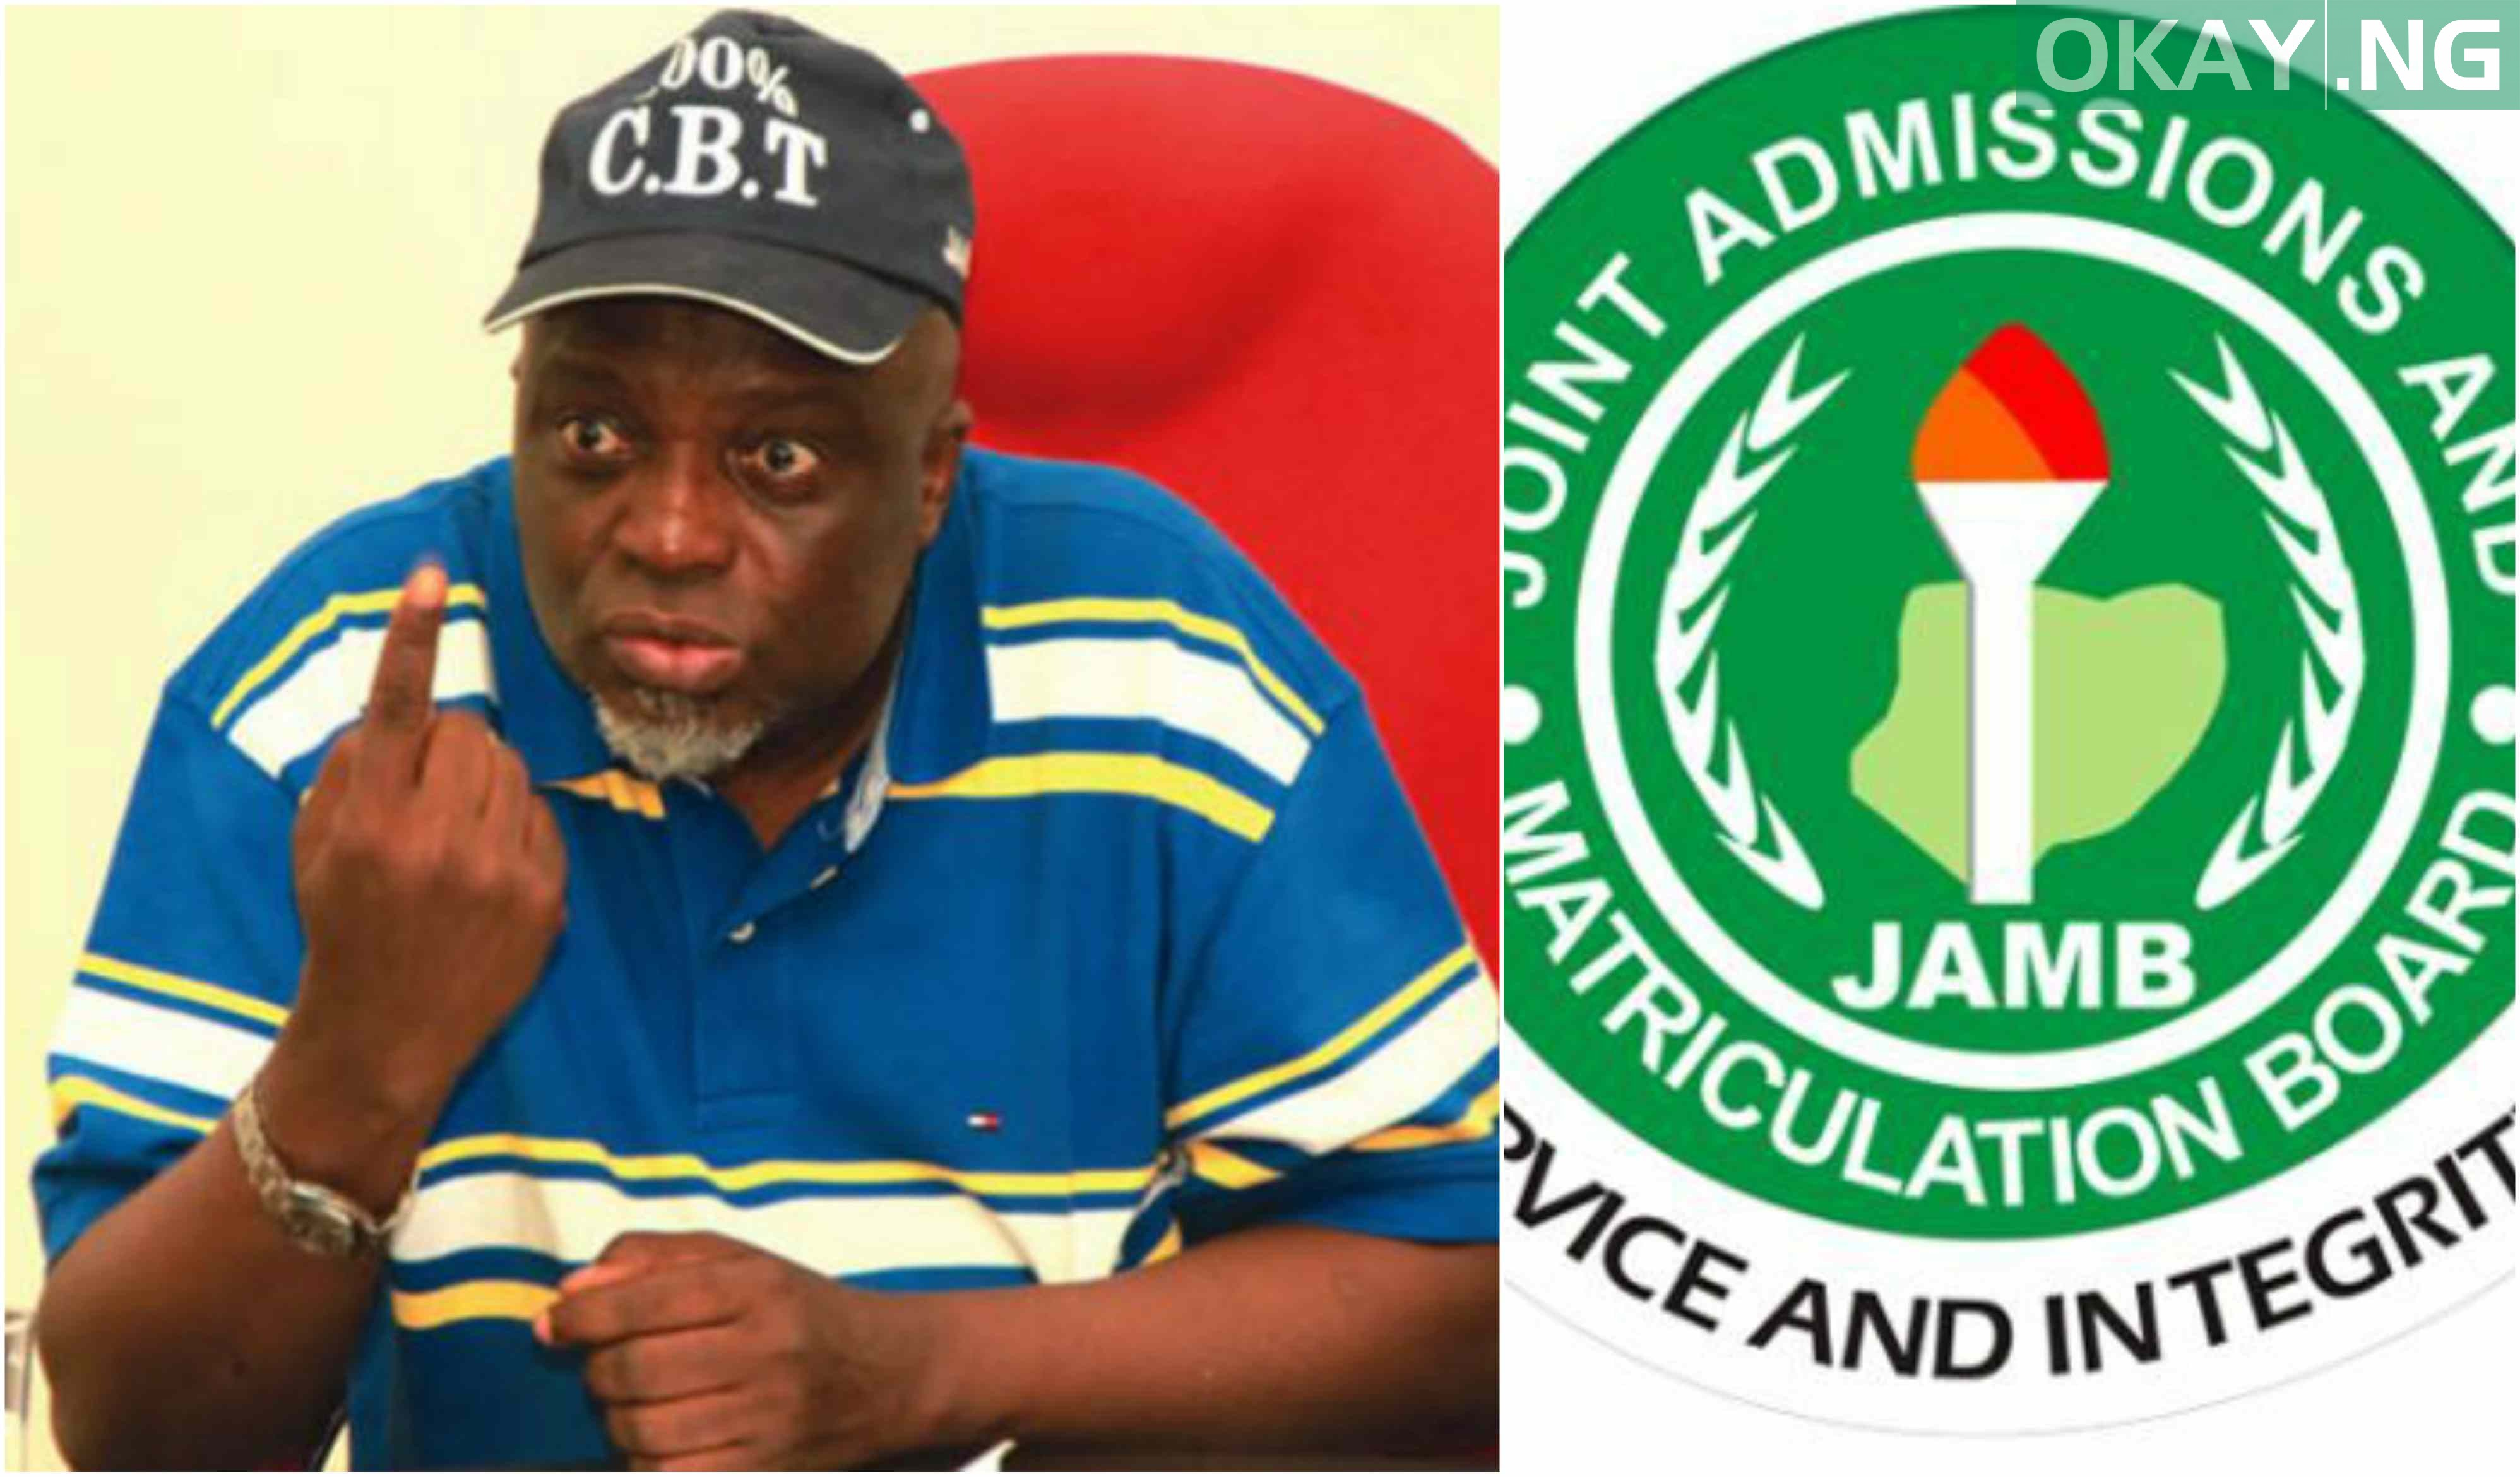 JAMB Prof Okay ng - JAMB parades top staff for collecting bribe from admission seeker